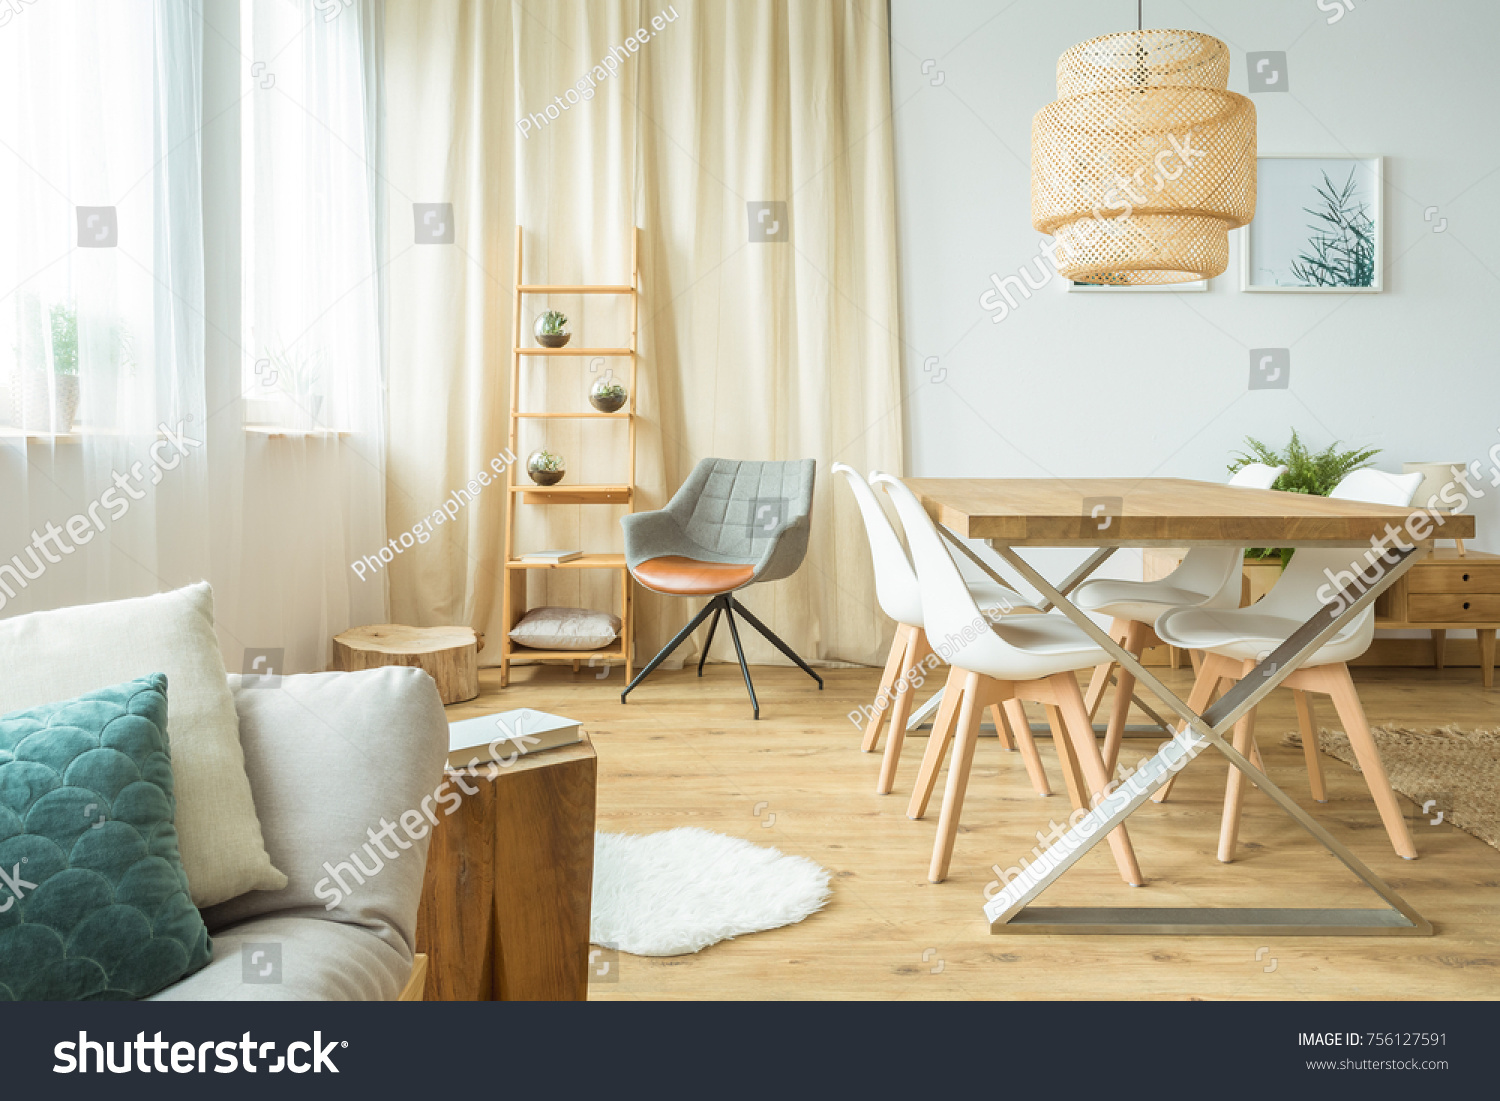 Rattan Lamp Above Table And Chairs In Multifunctional Dining Room With Sofa  And Poster On The